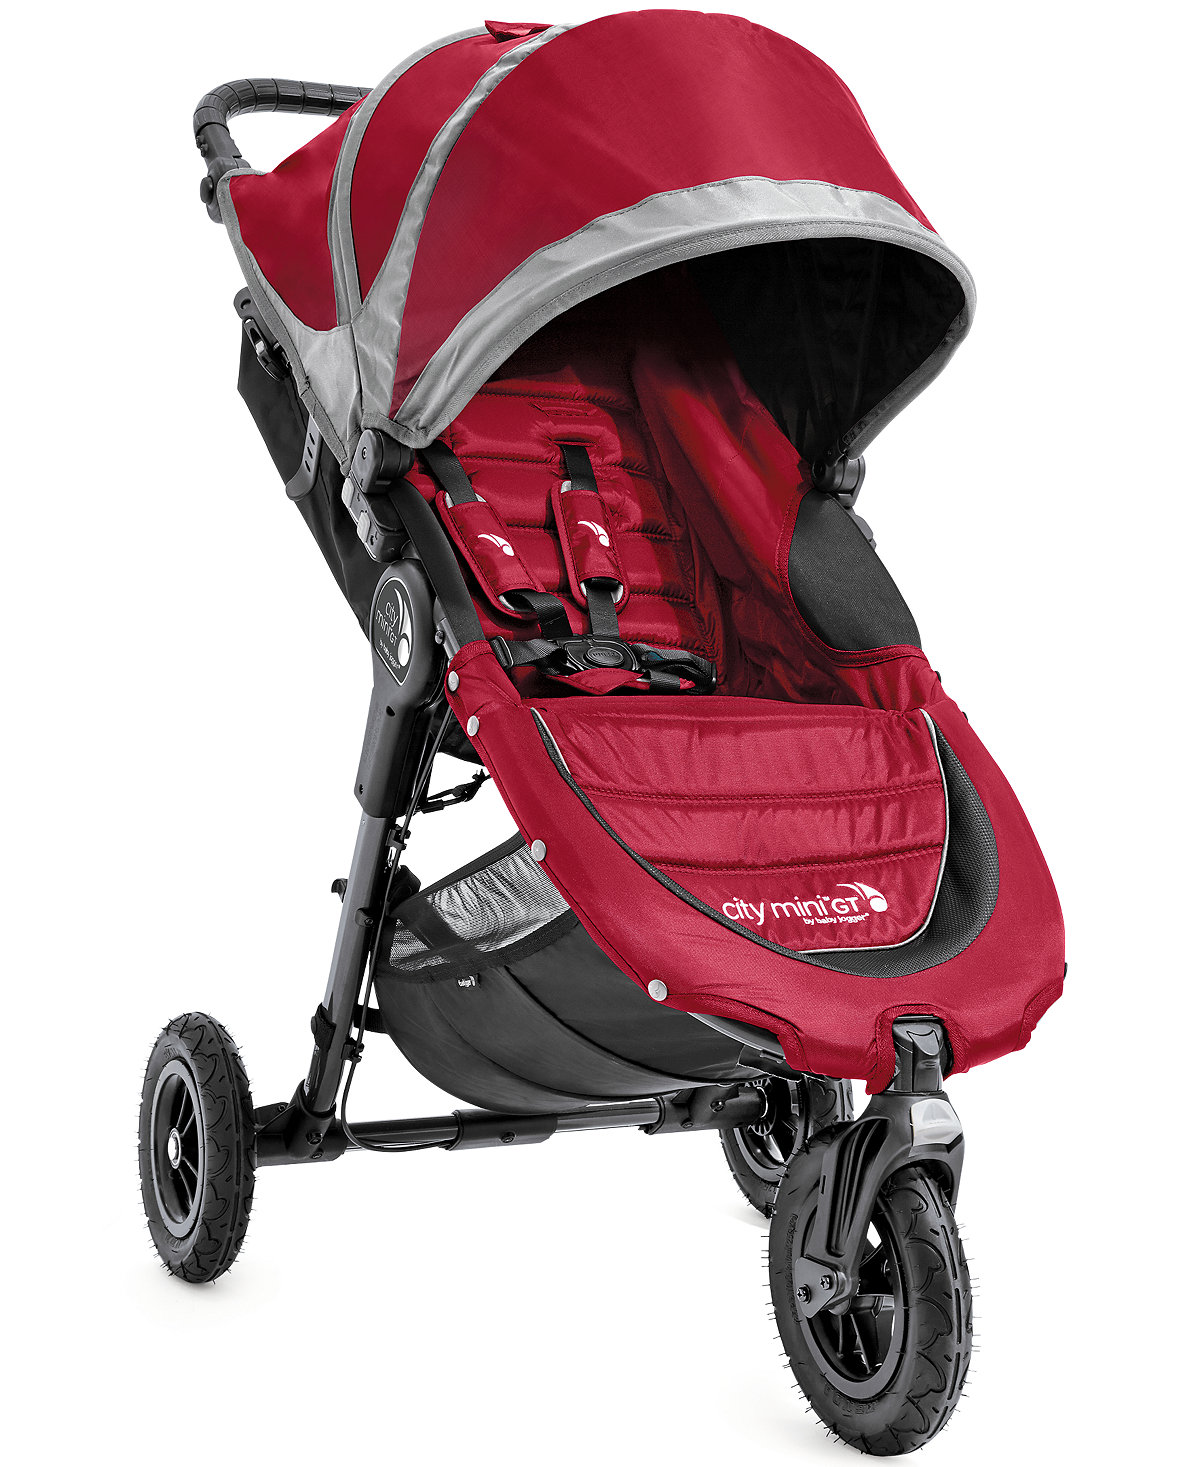 20% Off Baby Jogger City Tour and City Mini Gt Strollers!